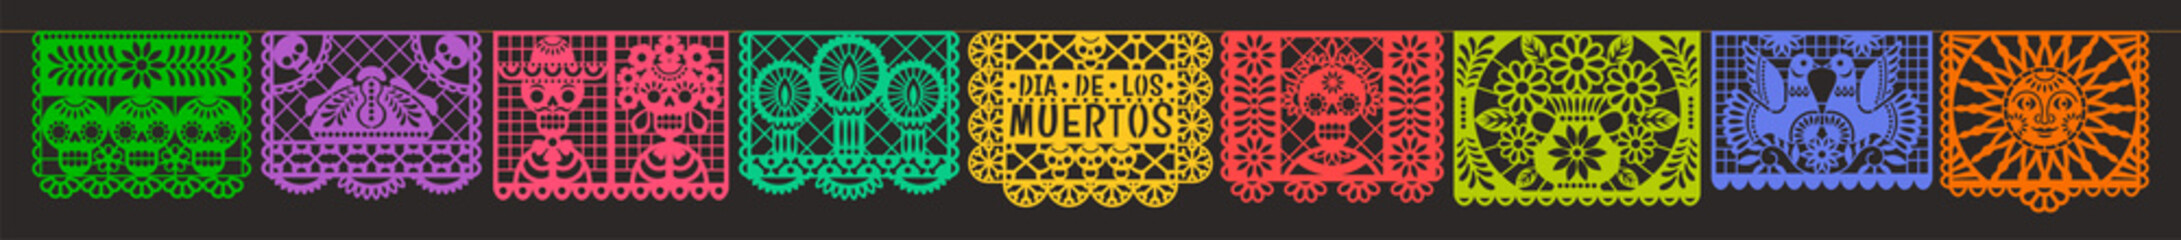 Day of the Dead. Dia de los muetros. Papel Picado. Vector horizontal banner with traditional Mexican paper cutting flags. Isolated on black background Wall mural